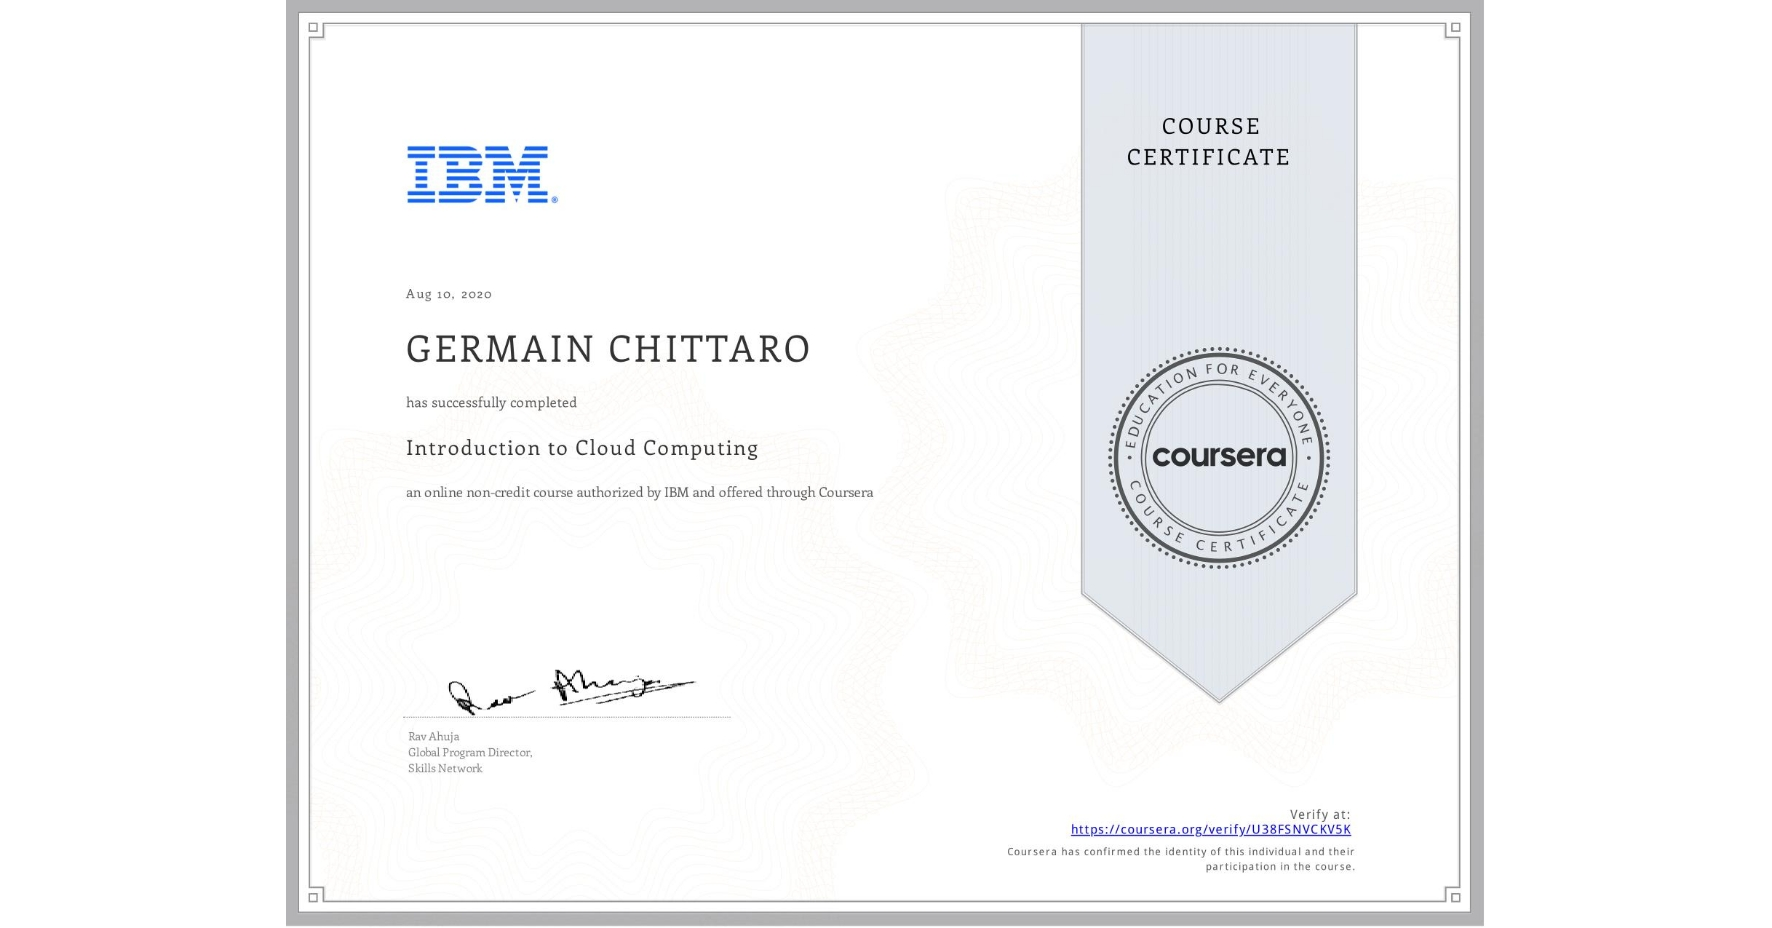 View certificate for GERMAIN CHITTARO, Introduction to Cloud Computing, an online non-credit course authorized by IBM and offered through Coursera